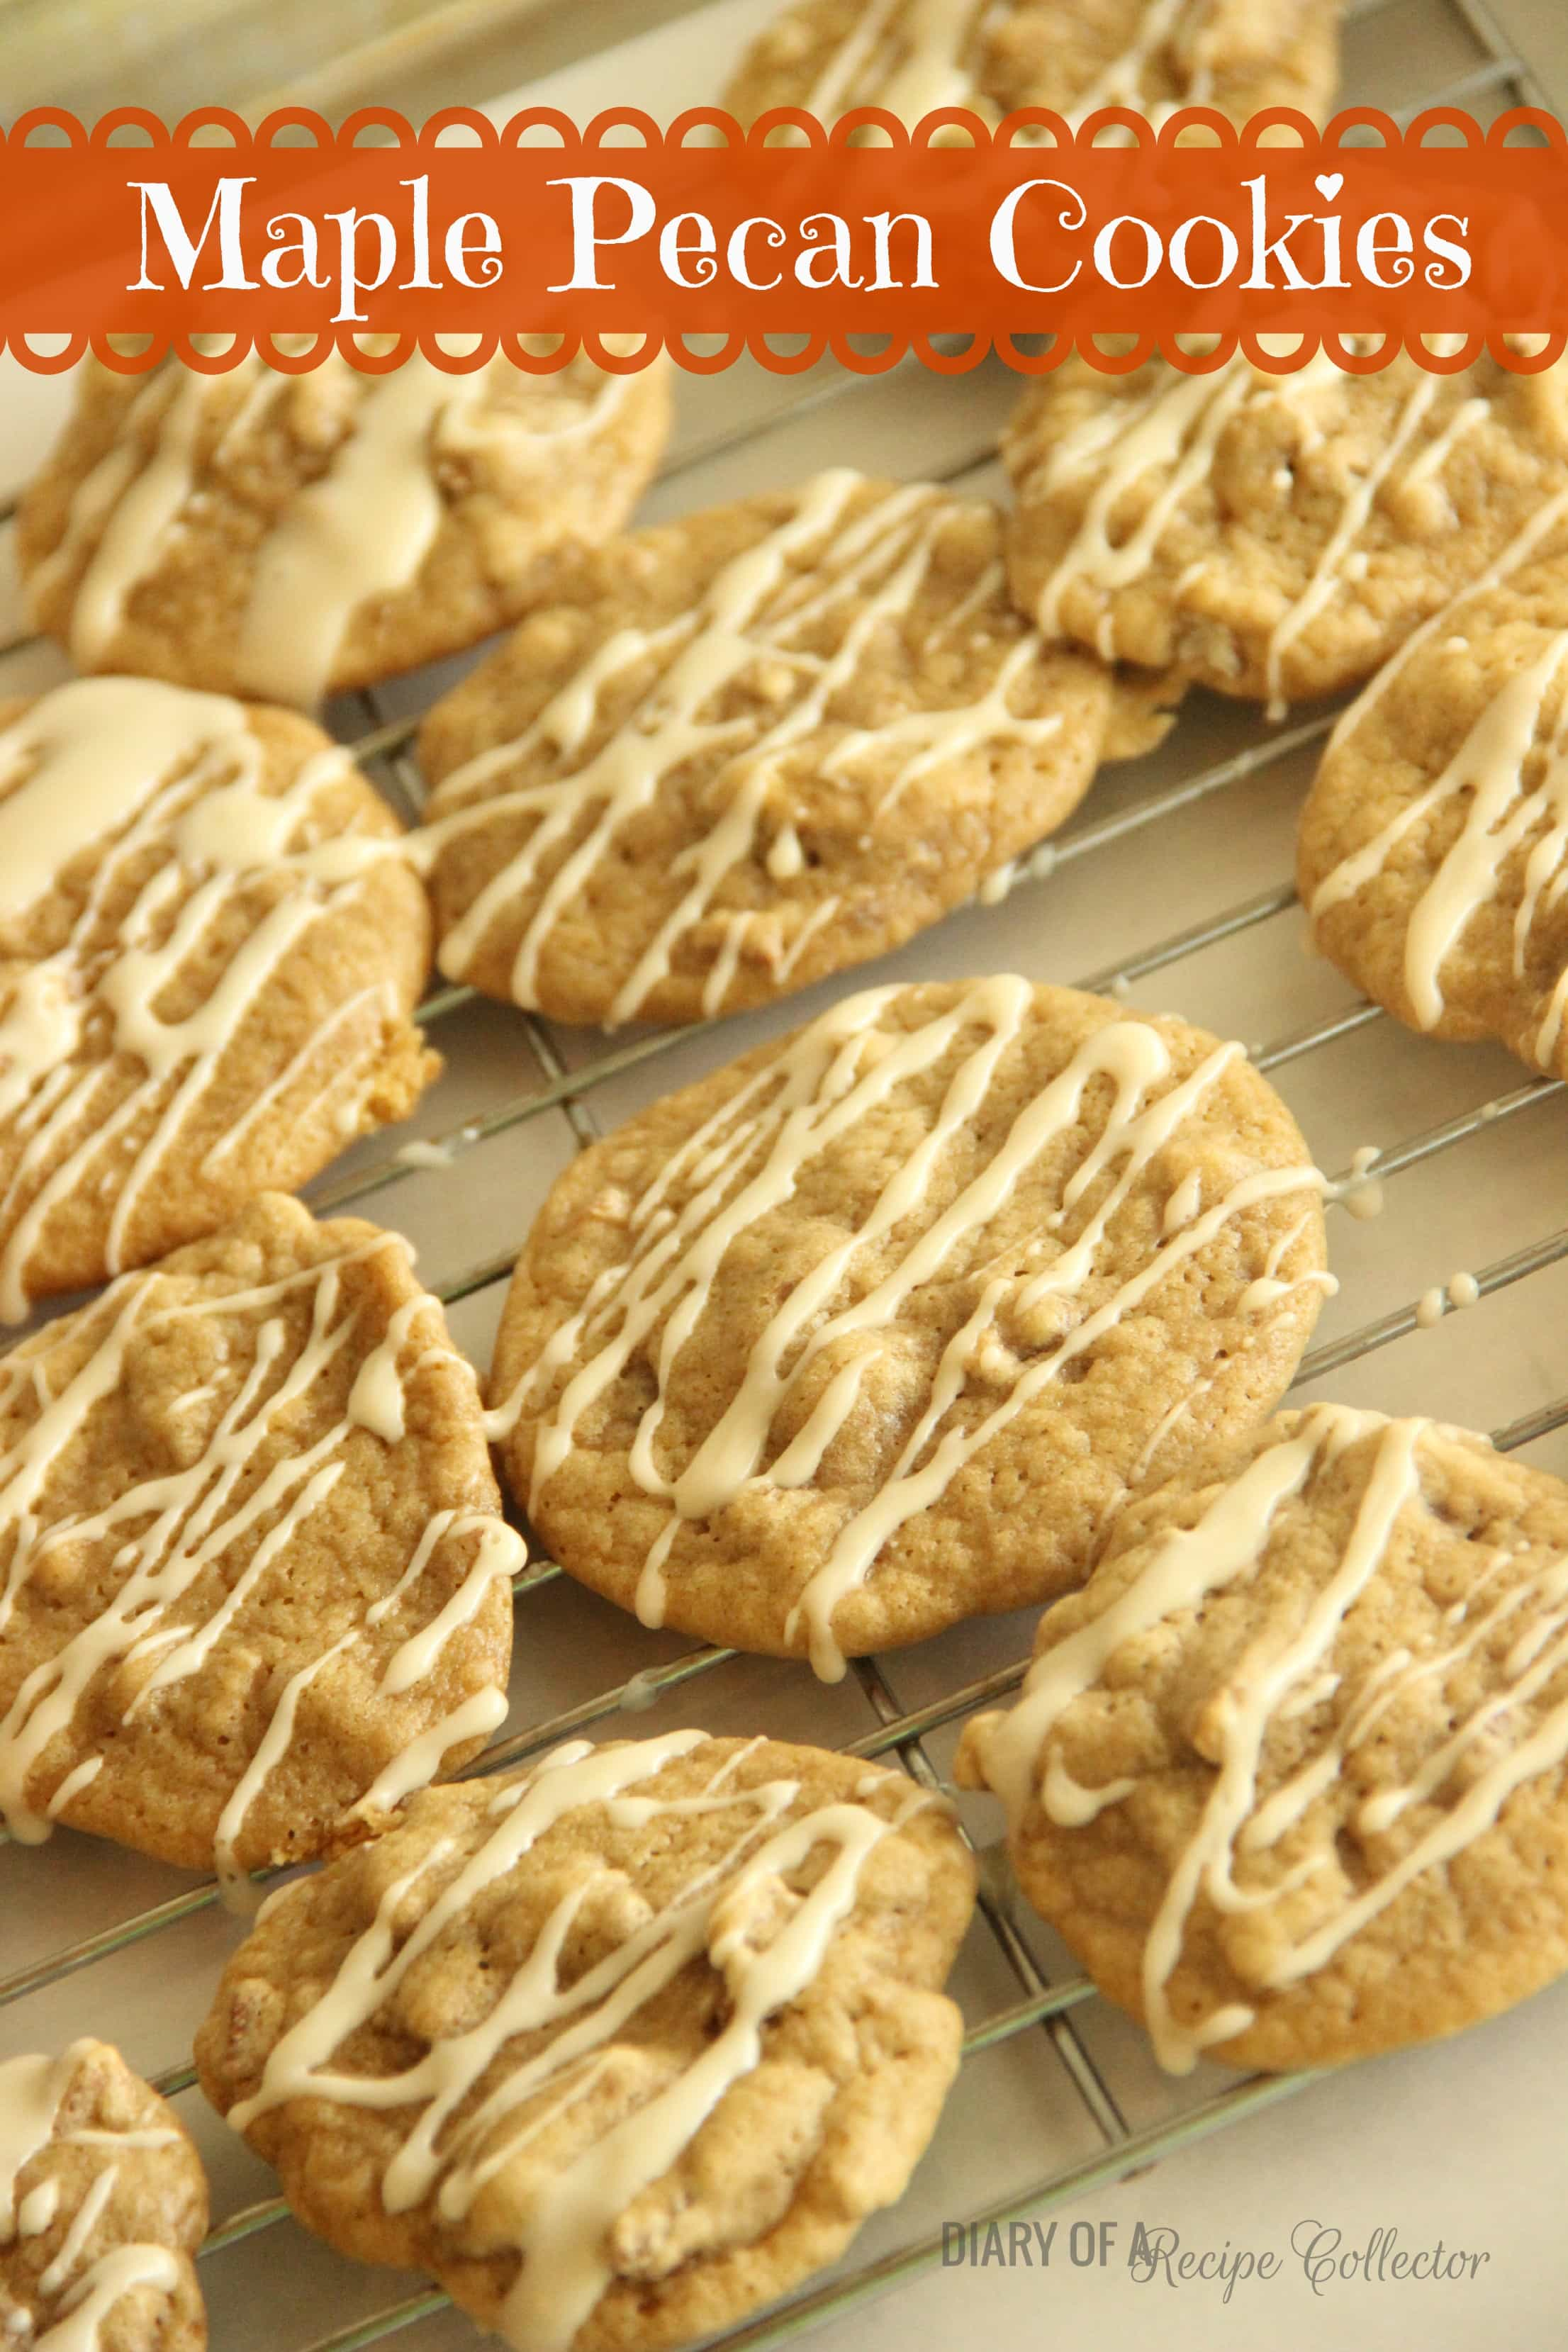 Maple Pecan Cookies - Diary of A Recipe Collector